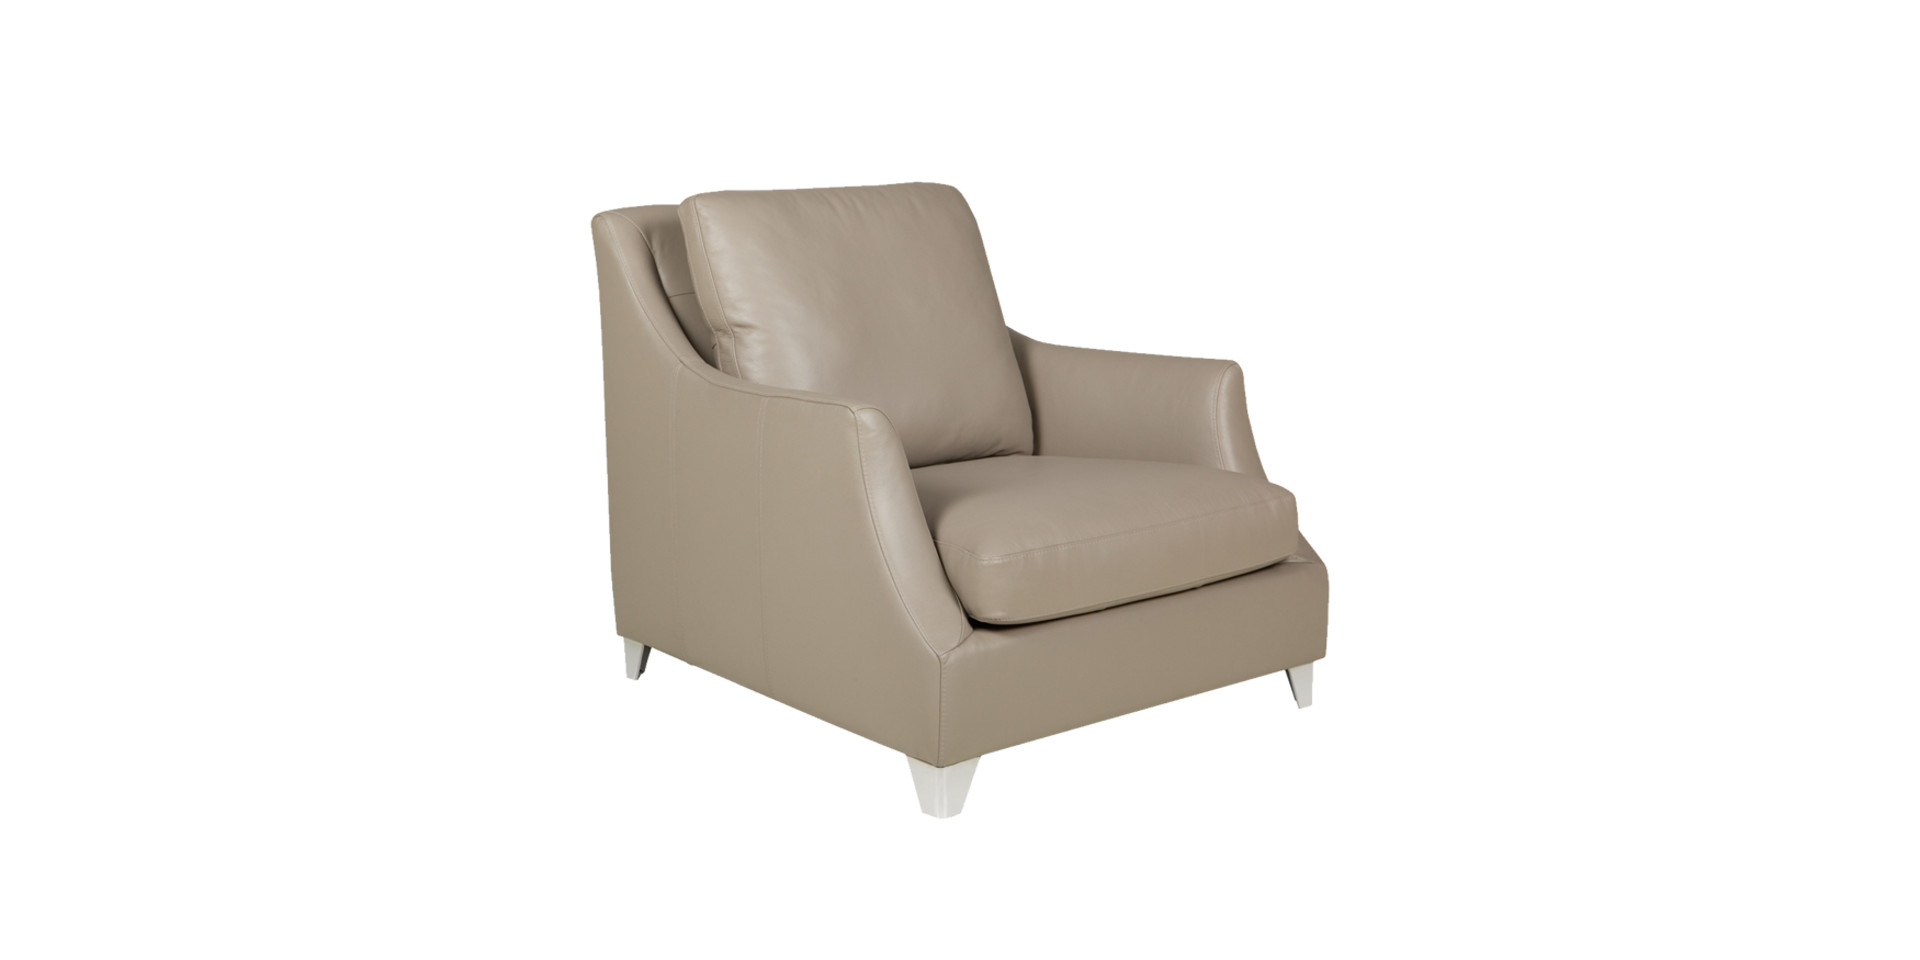 sits-rose-fauteuil-armchair_matrix_light_grey_2_0